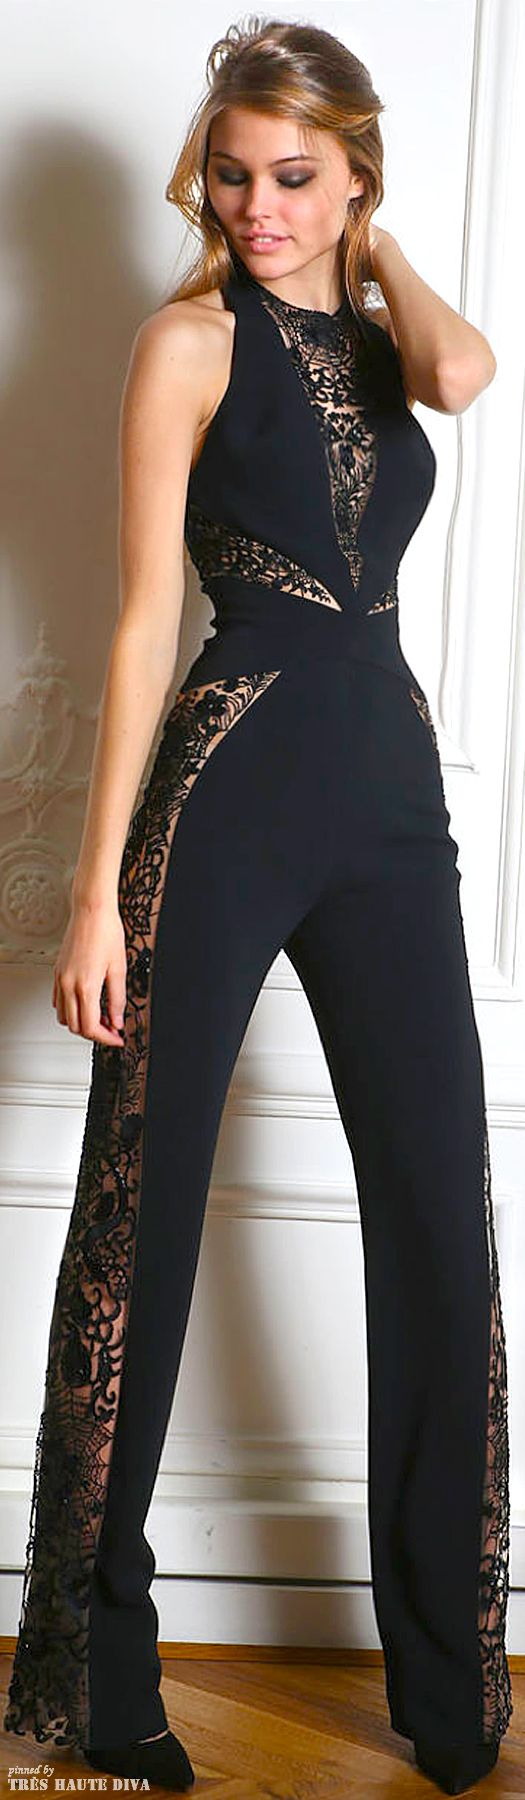 Upper part only is perfect Zuhair #Murad - black jumpsuit - 2014                                                                                                                                                                                 More